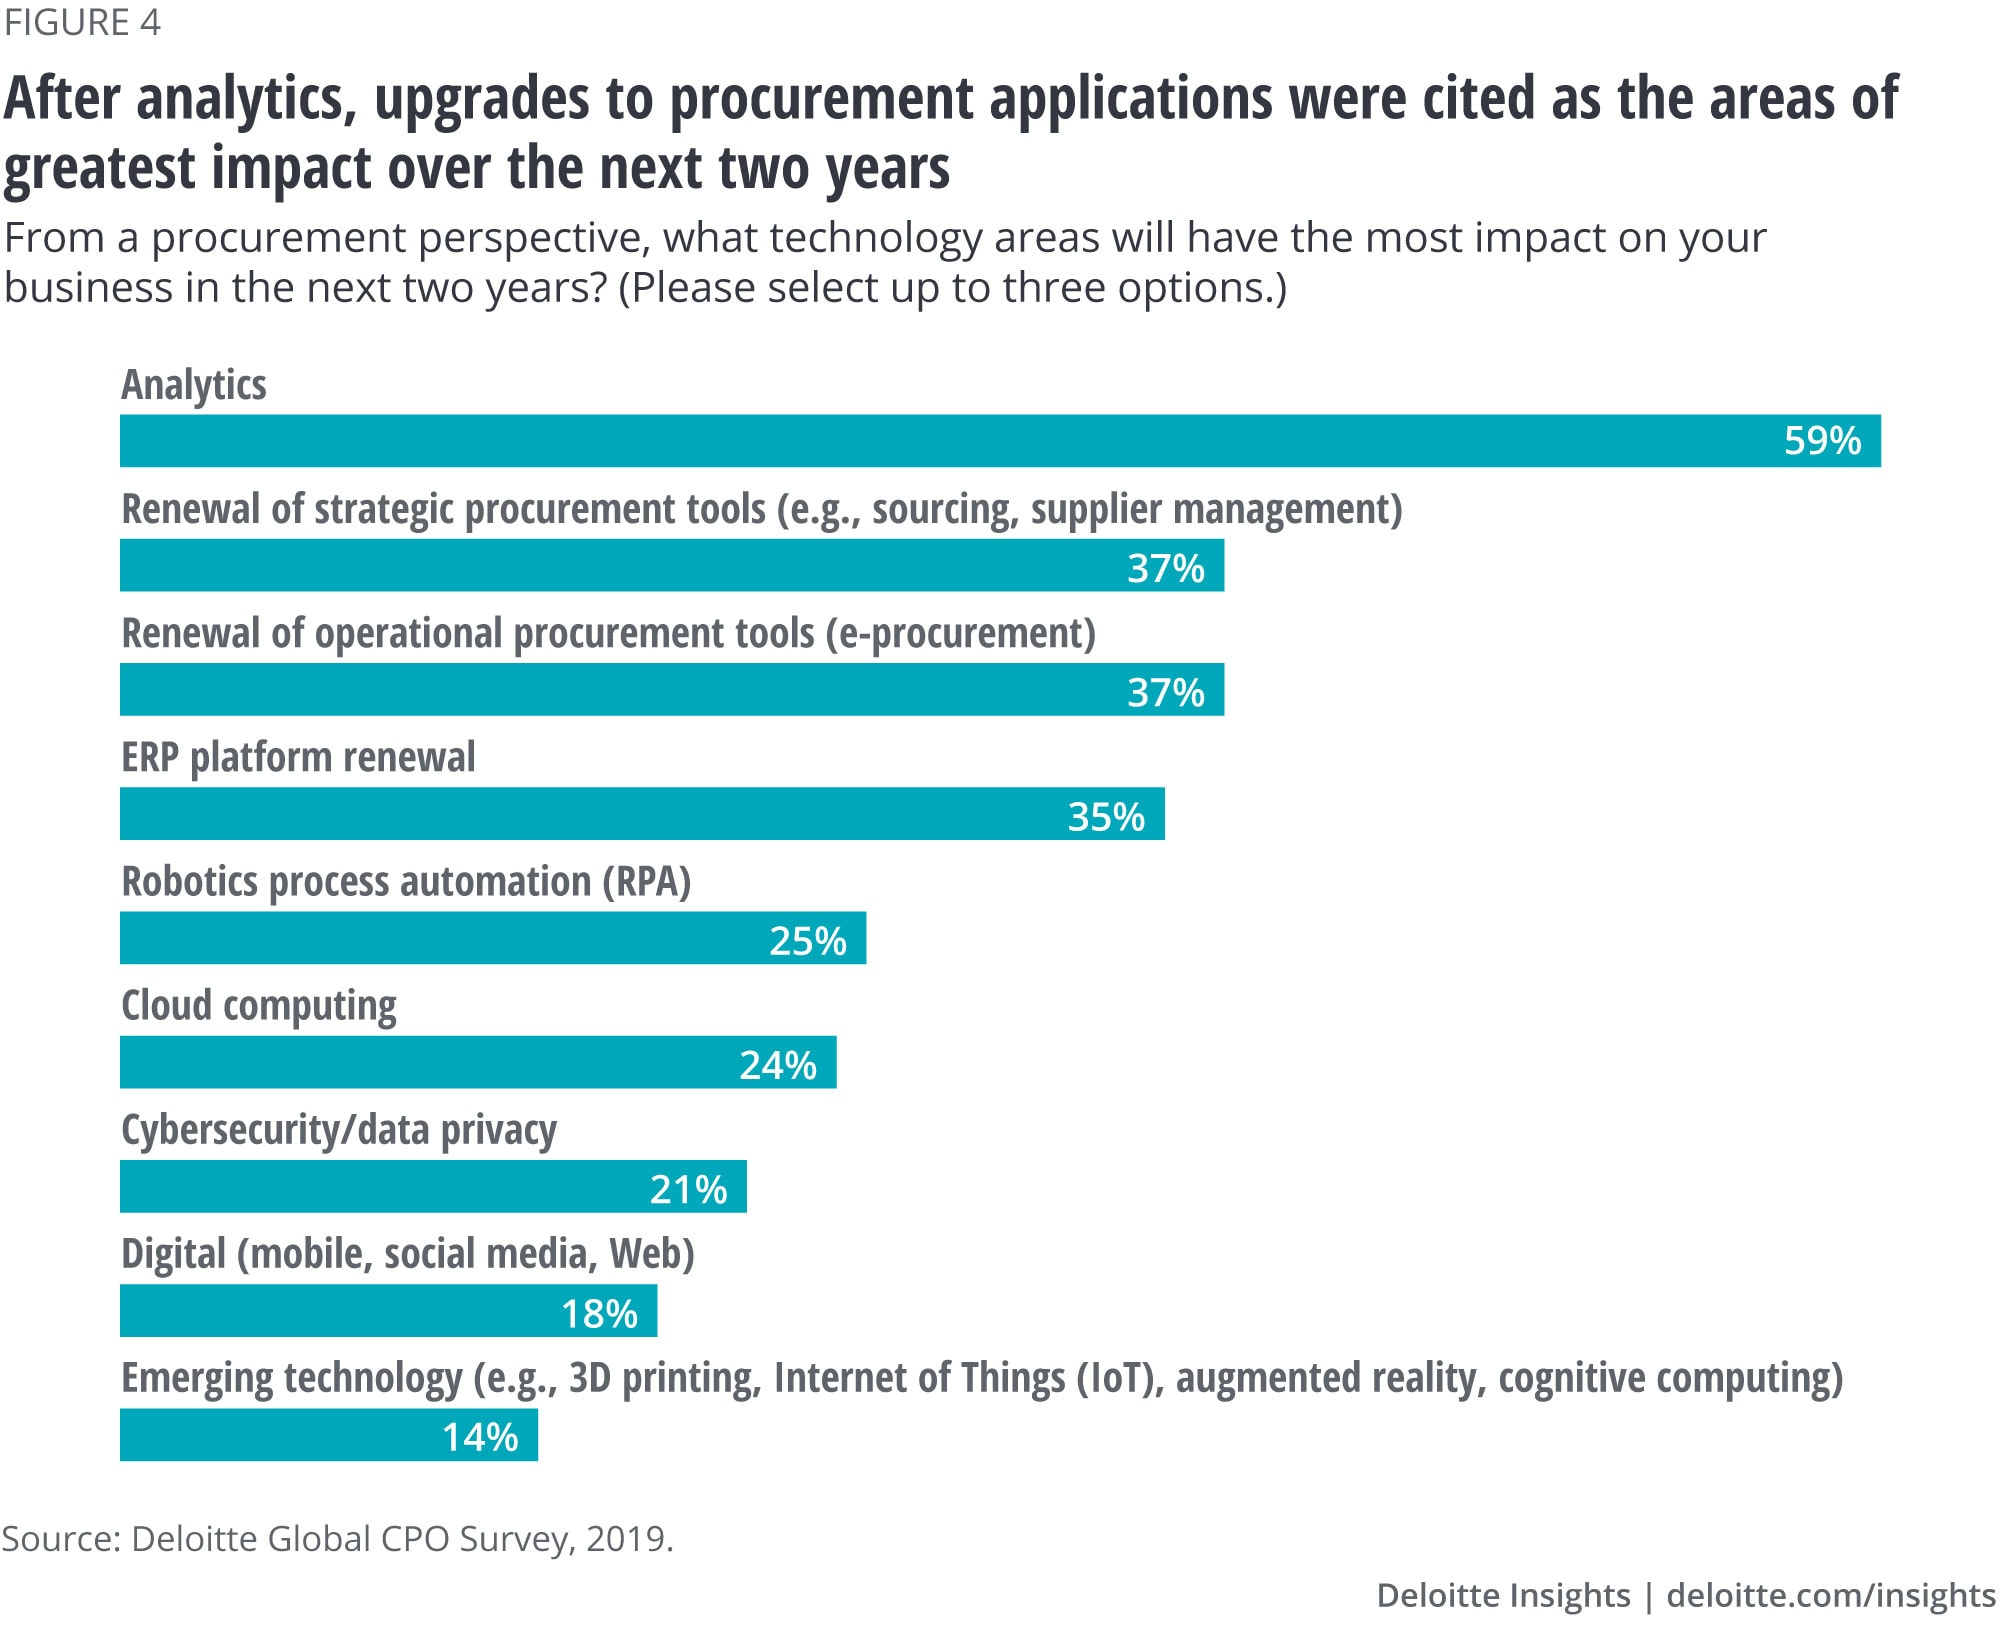 After analytics, upgrades to procurement applications were cited as the areas of greatest impact over the next two years